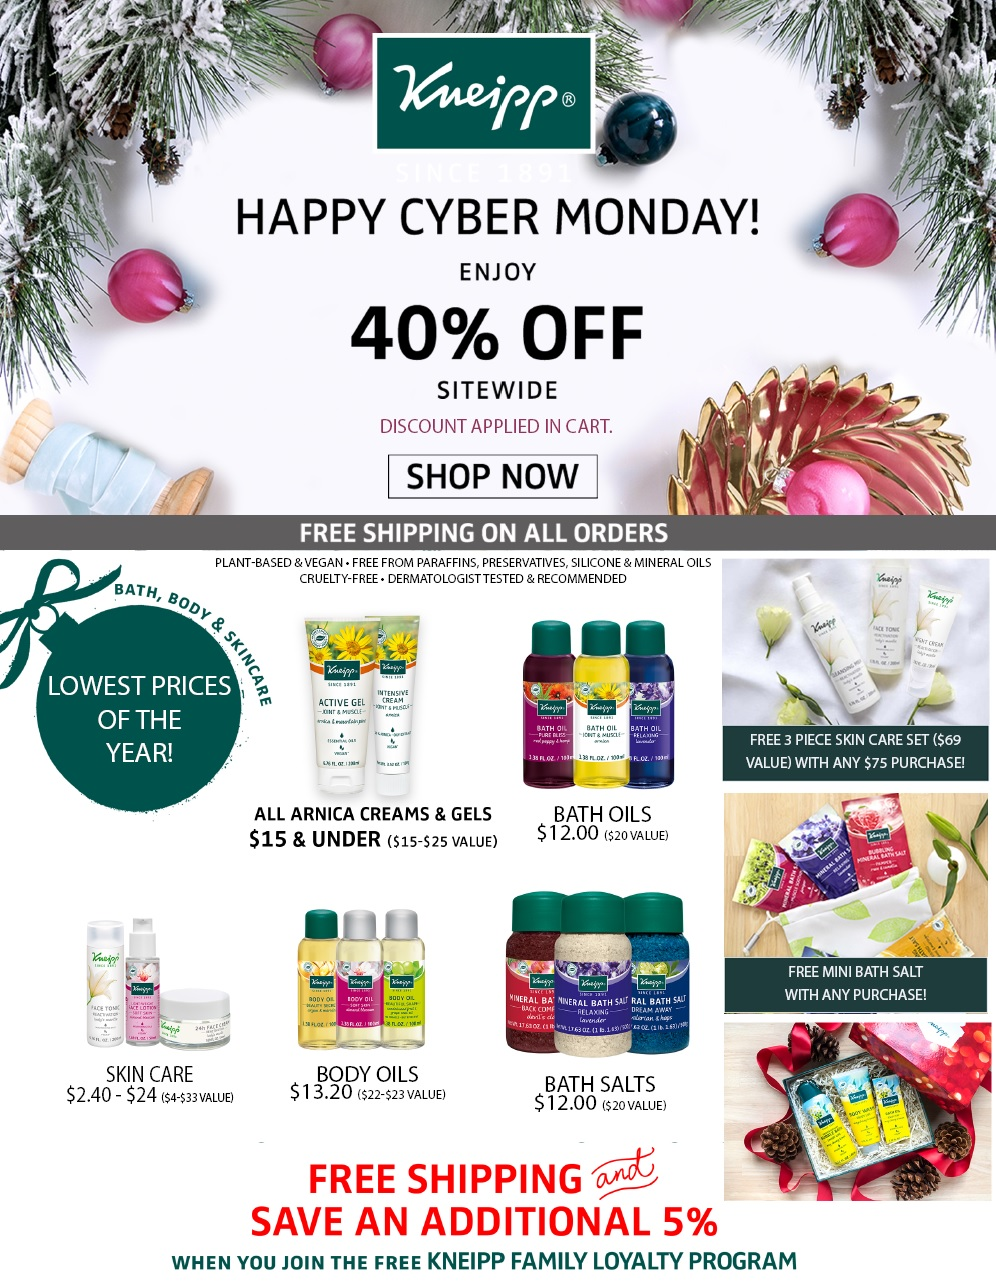 Kneipp Cyber Monday page 1